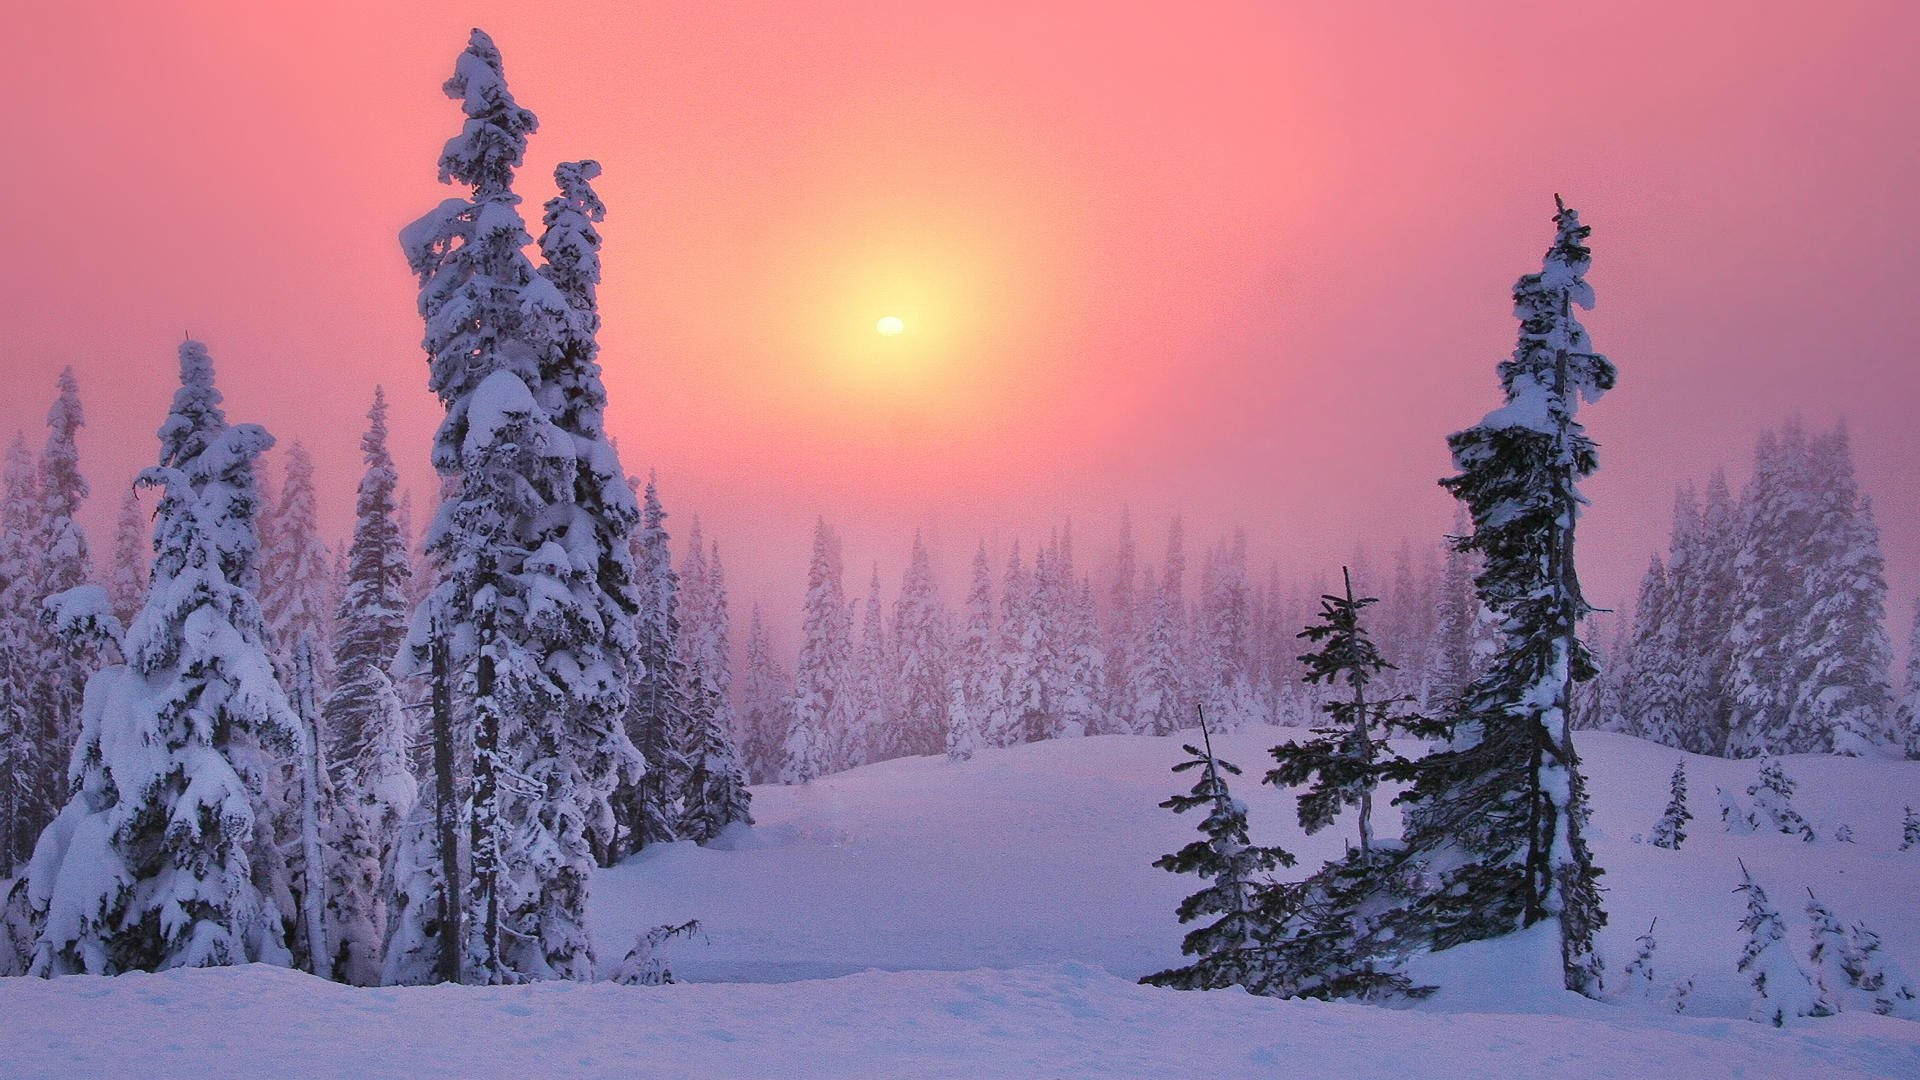 1920x1080 Pink Winter 529885. UPLOAD. TAGS: Wonderland Albums Widescreen Background  Winter Landscapes